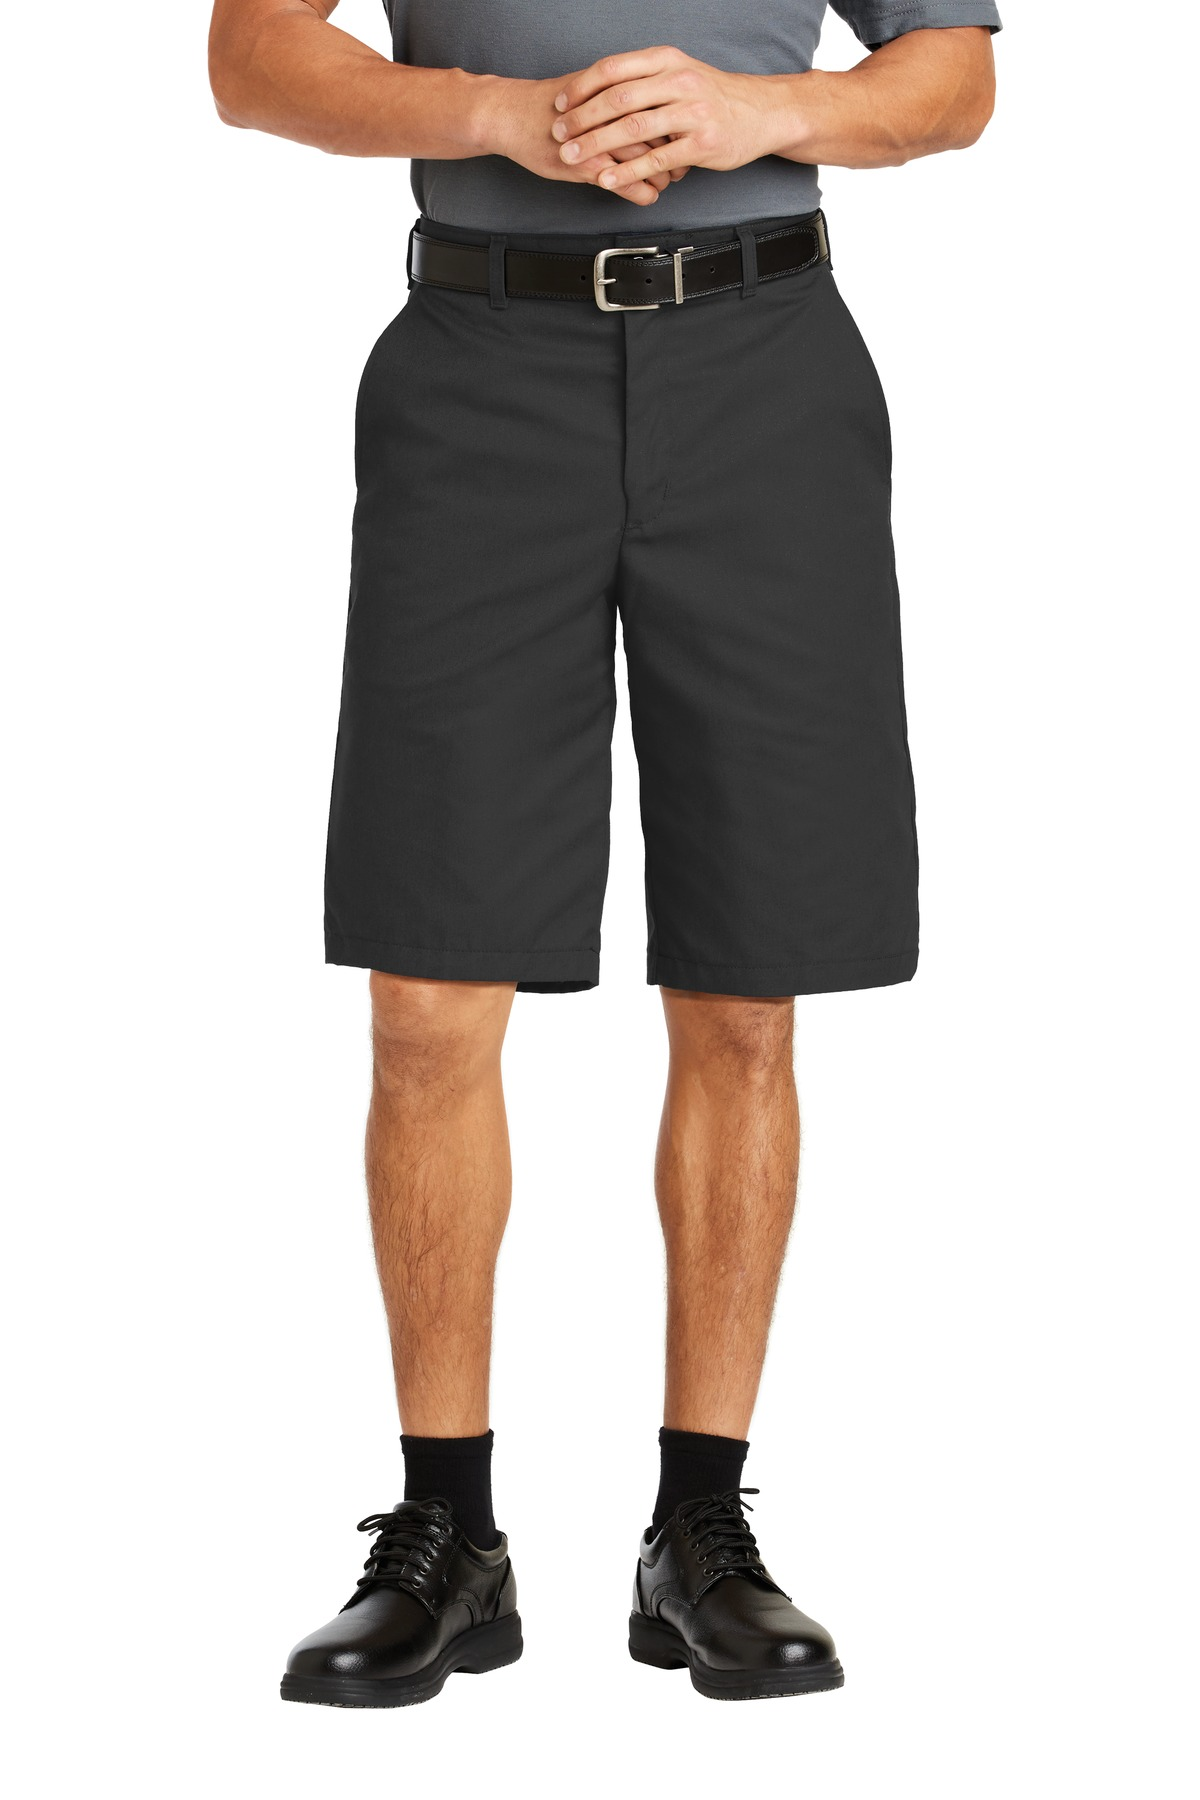 Industrial Work Pants/Shorts